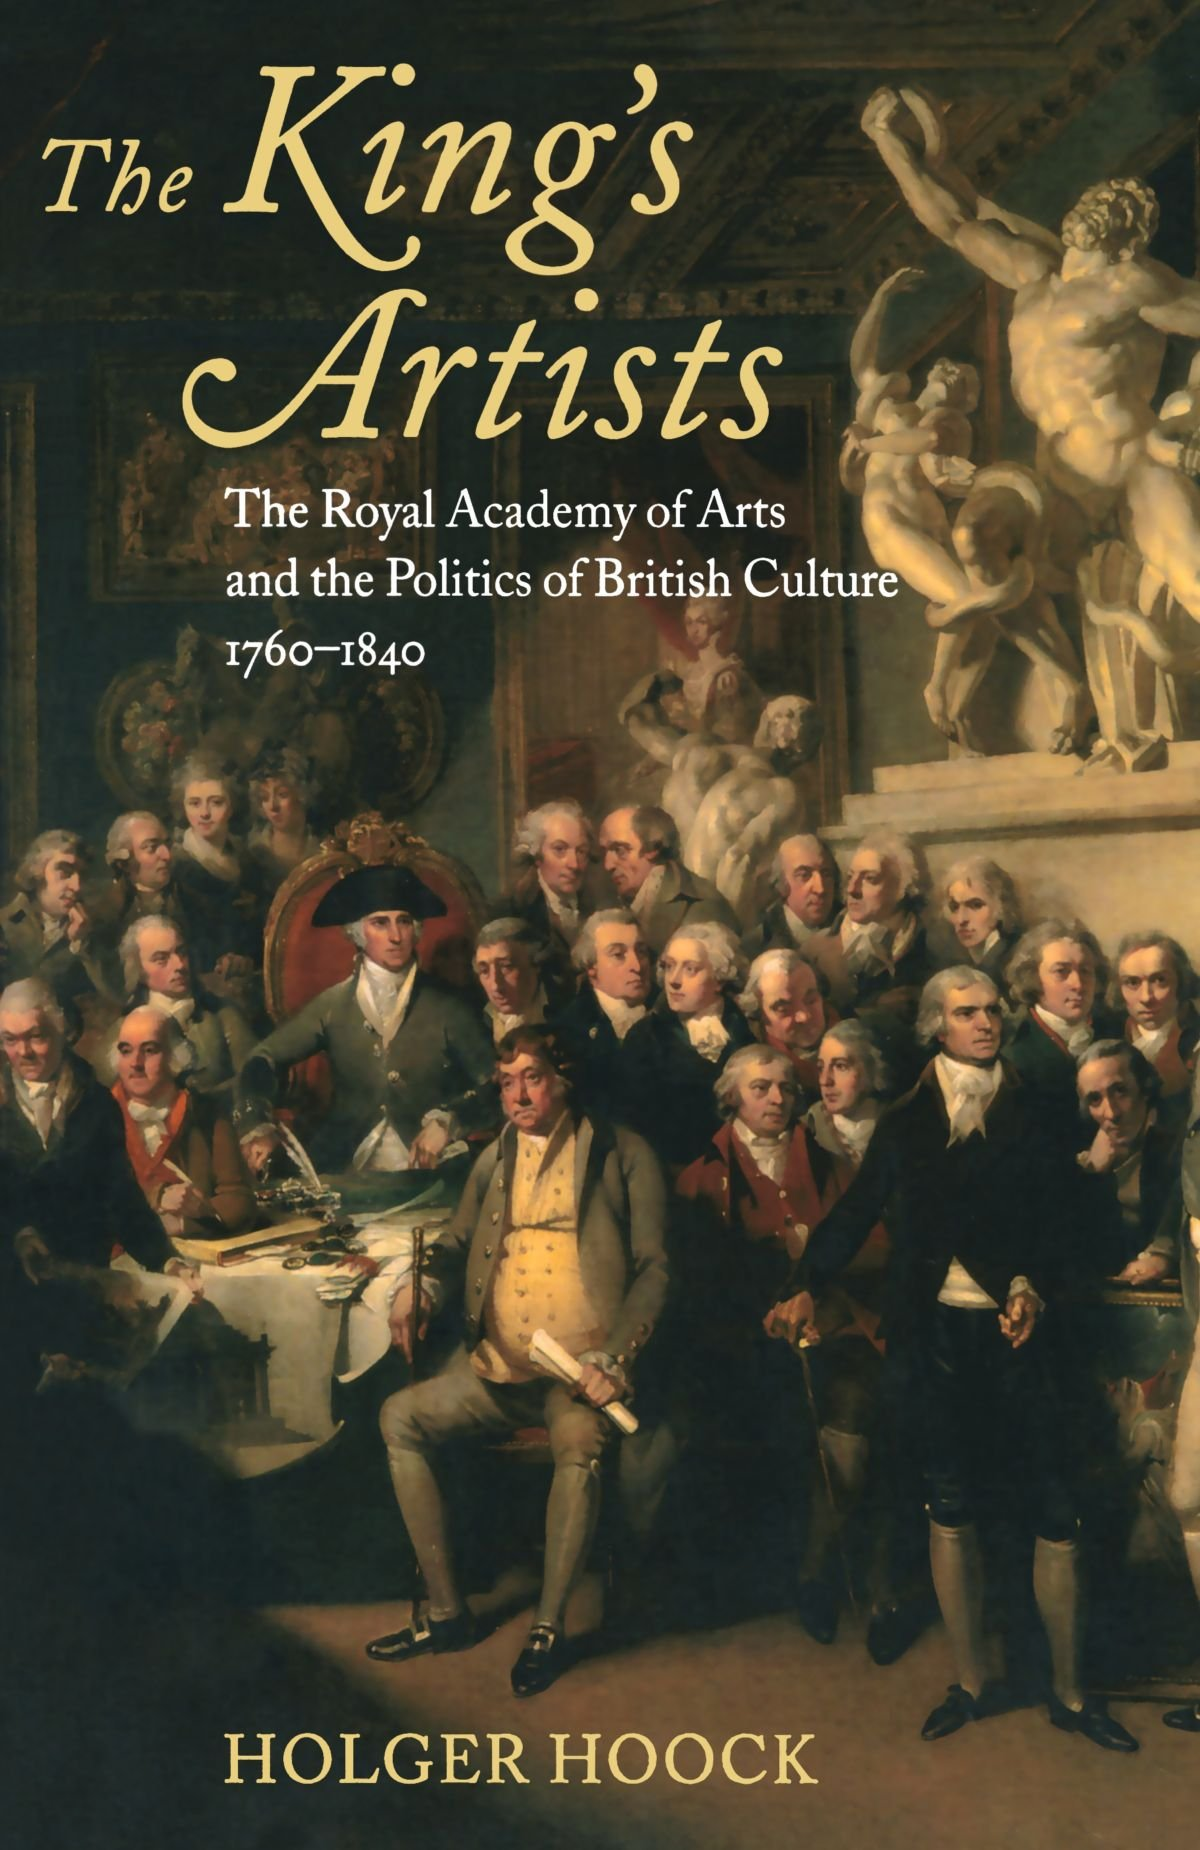 the kings artists the royal academy of arts and the politics of british culture 1760 1840 oxford historical monographs